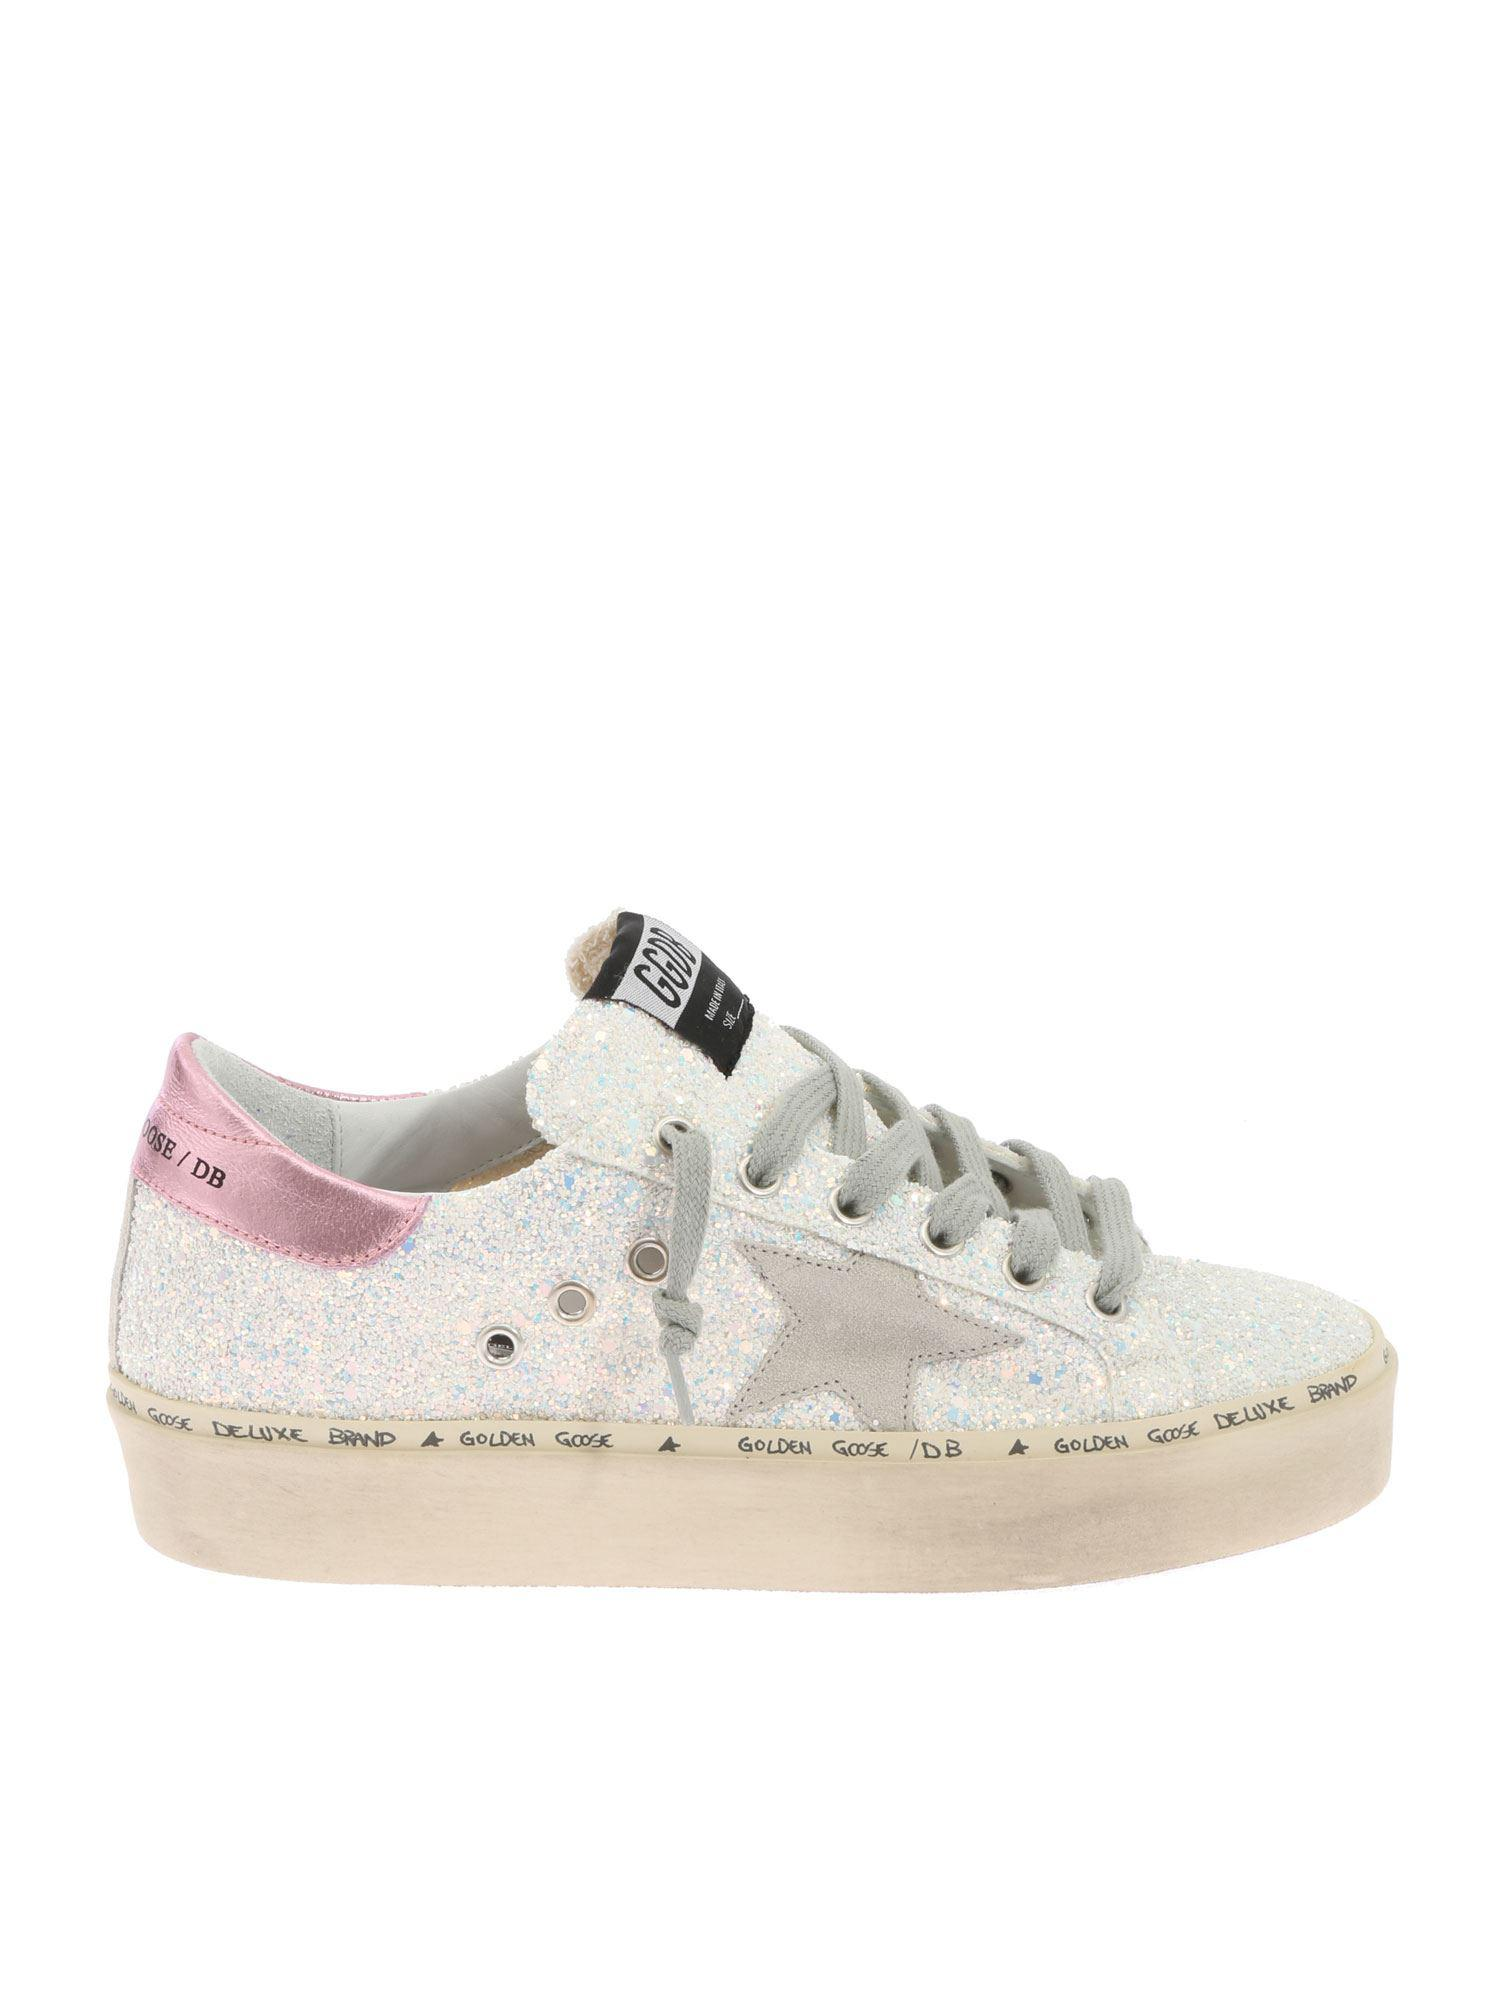 673ca086042d Golden Goose Deluxe Brand. Women s White Ice Star Sneakers With Glitter